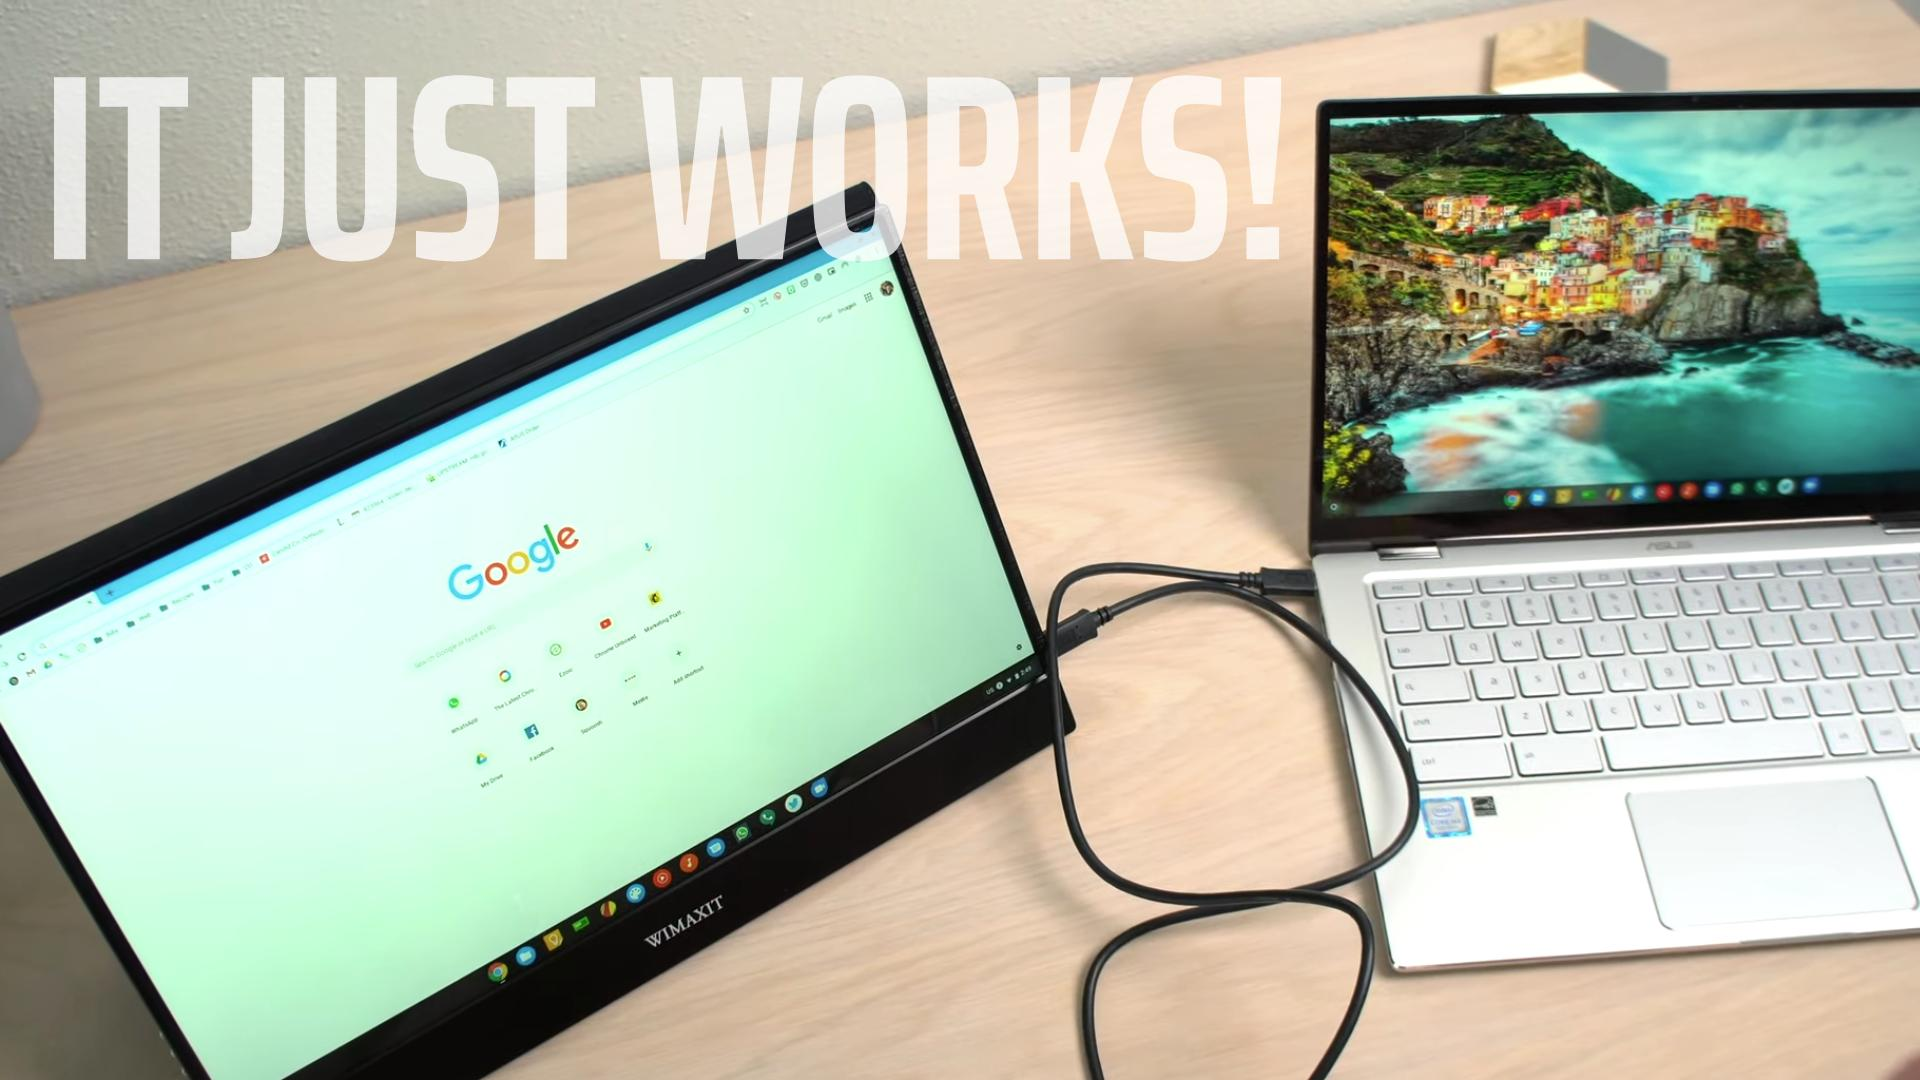 Unboxing A Touchscreen USB-C Portable Monitor That Just Works [VIDEO]